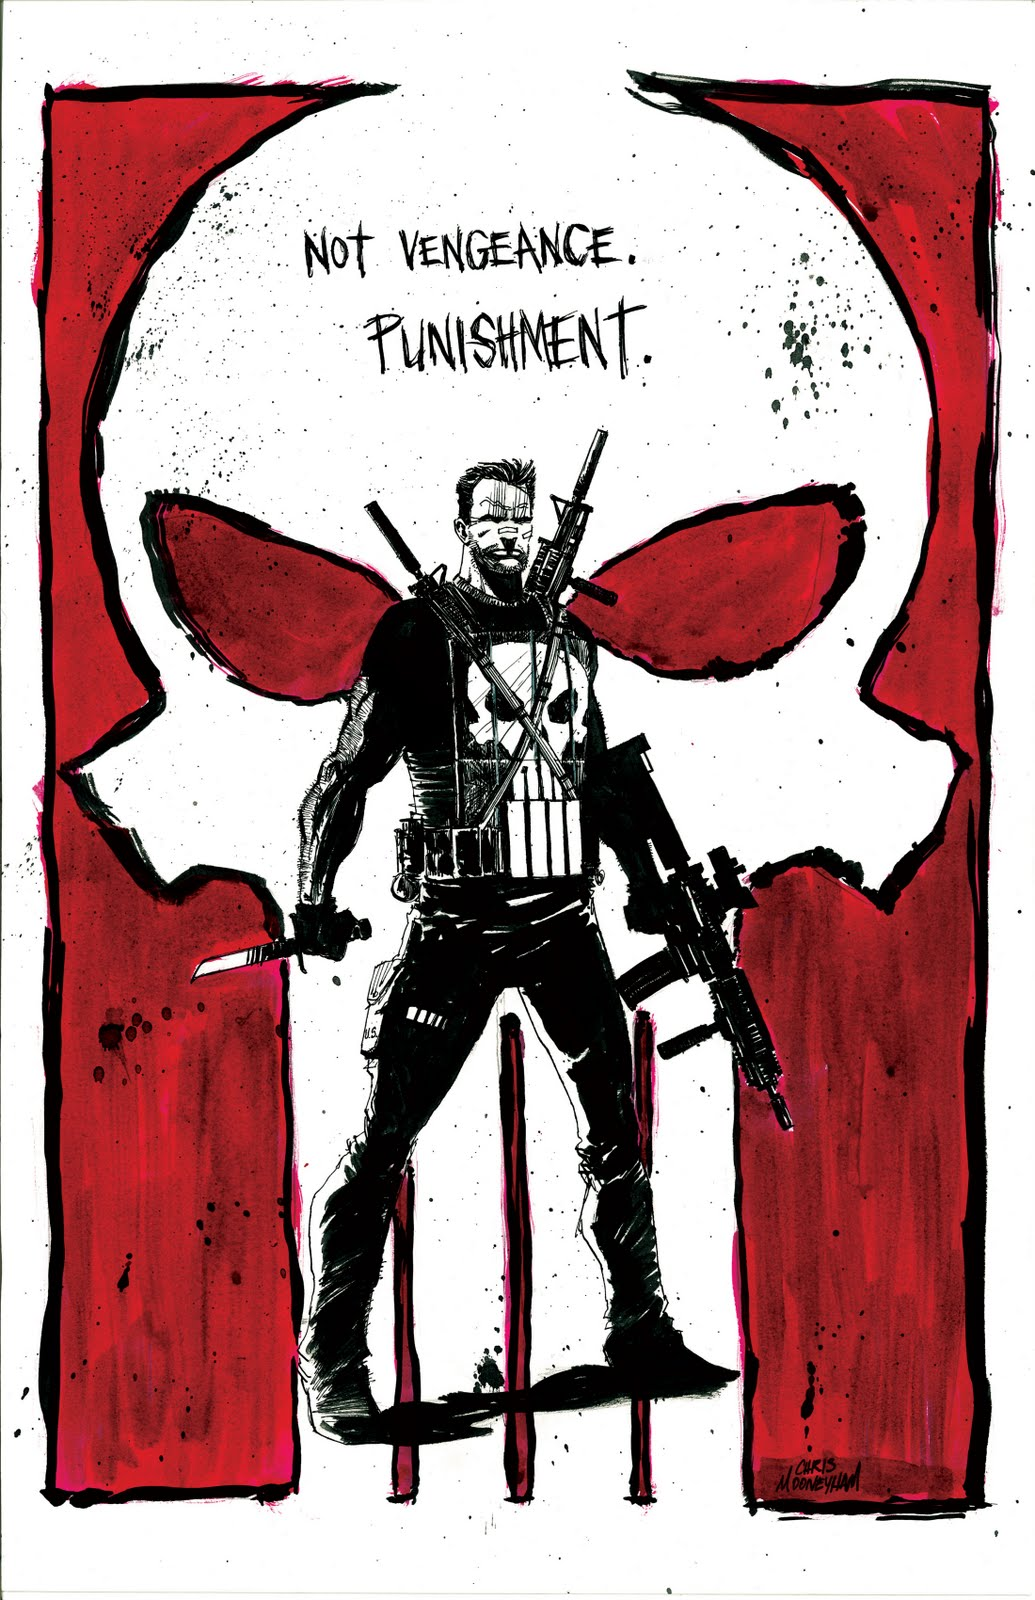 http://1.bp.blogspot.com/-fzcdZ_S4MiM/Tdxb_bGBiPI/AAAAAAAAAJQ/oU3SA6FB6YQ/s1600/The-Punisher.jpg